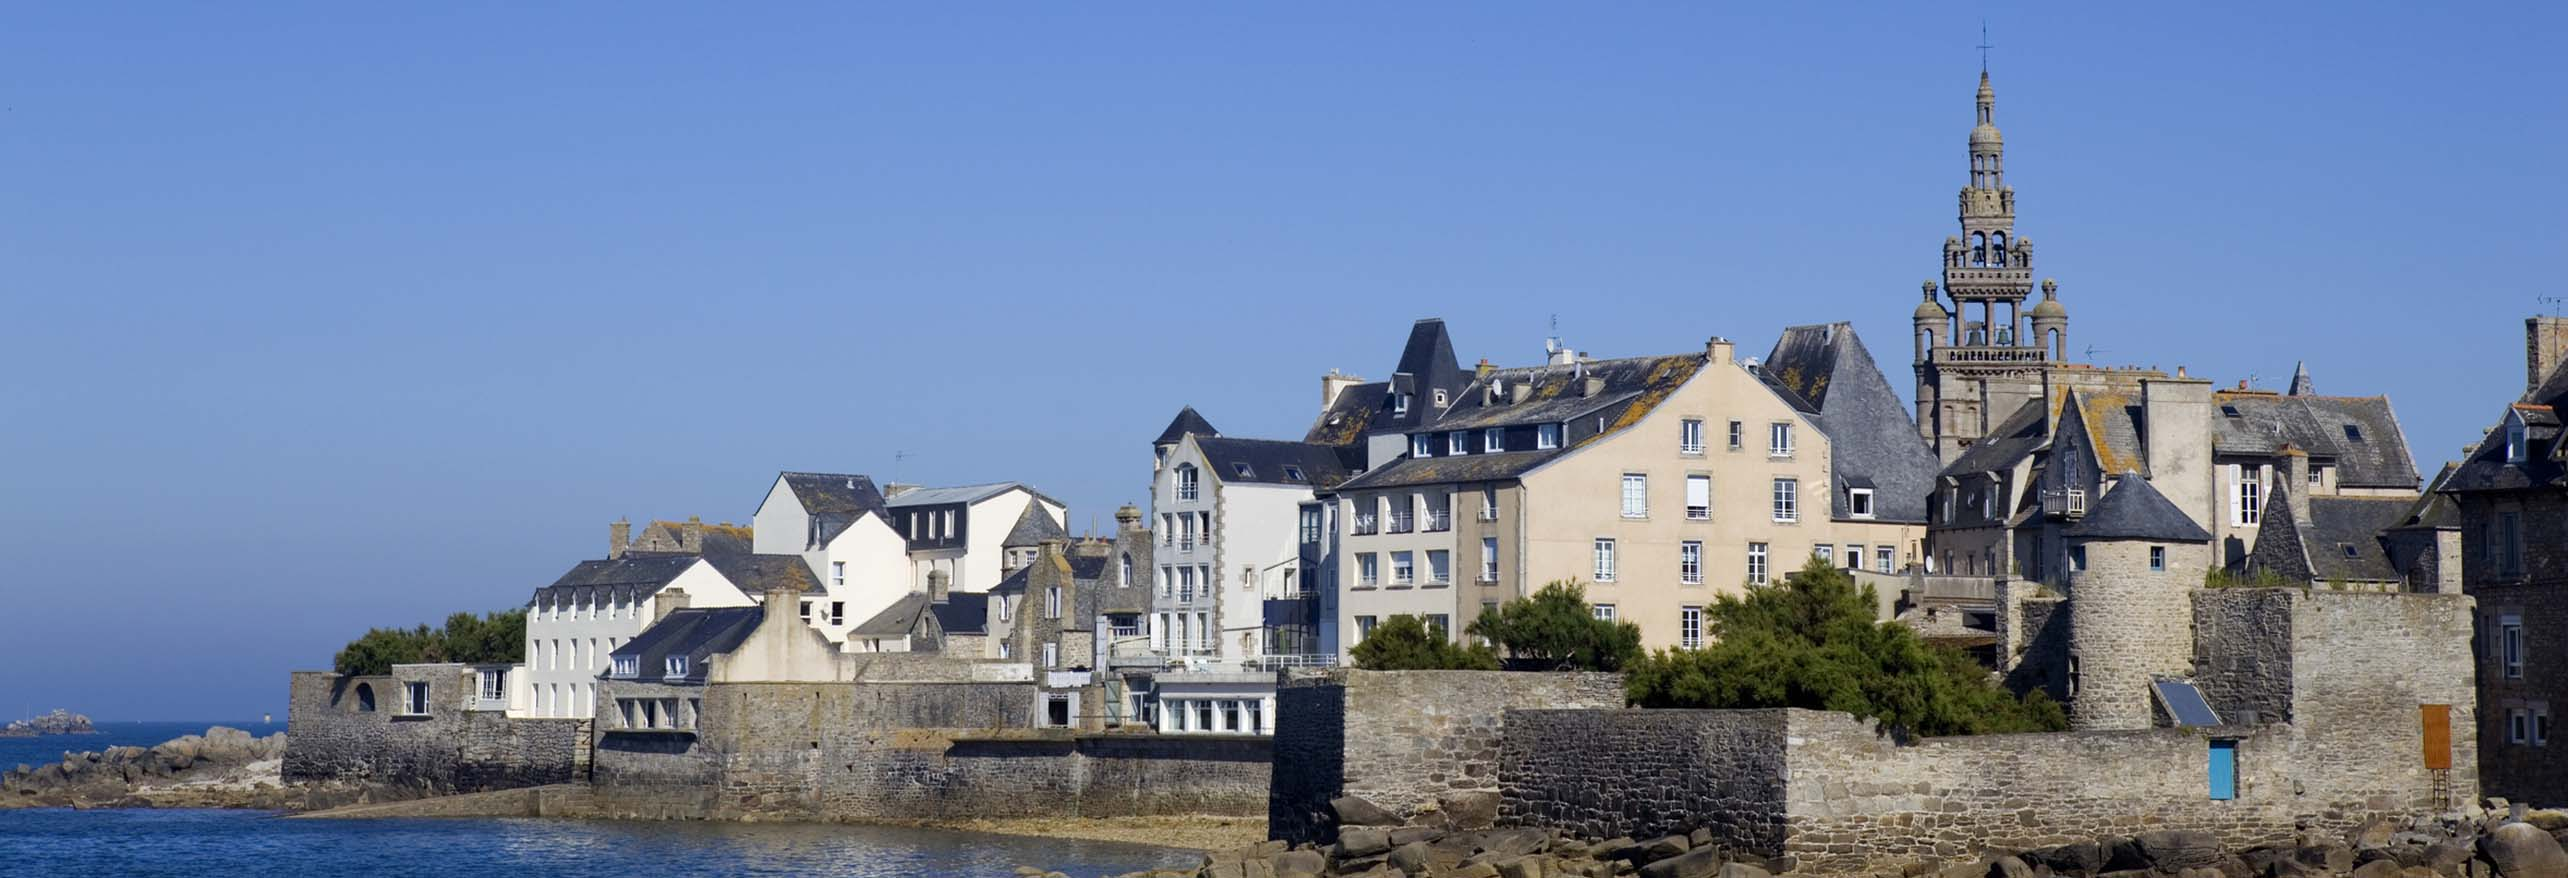 Roscoff France  city photo : Hôtel Régina 2 à Roscoff